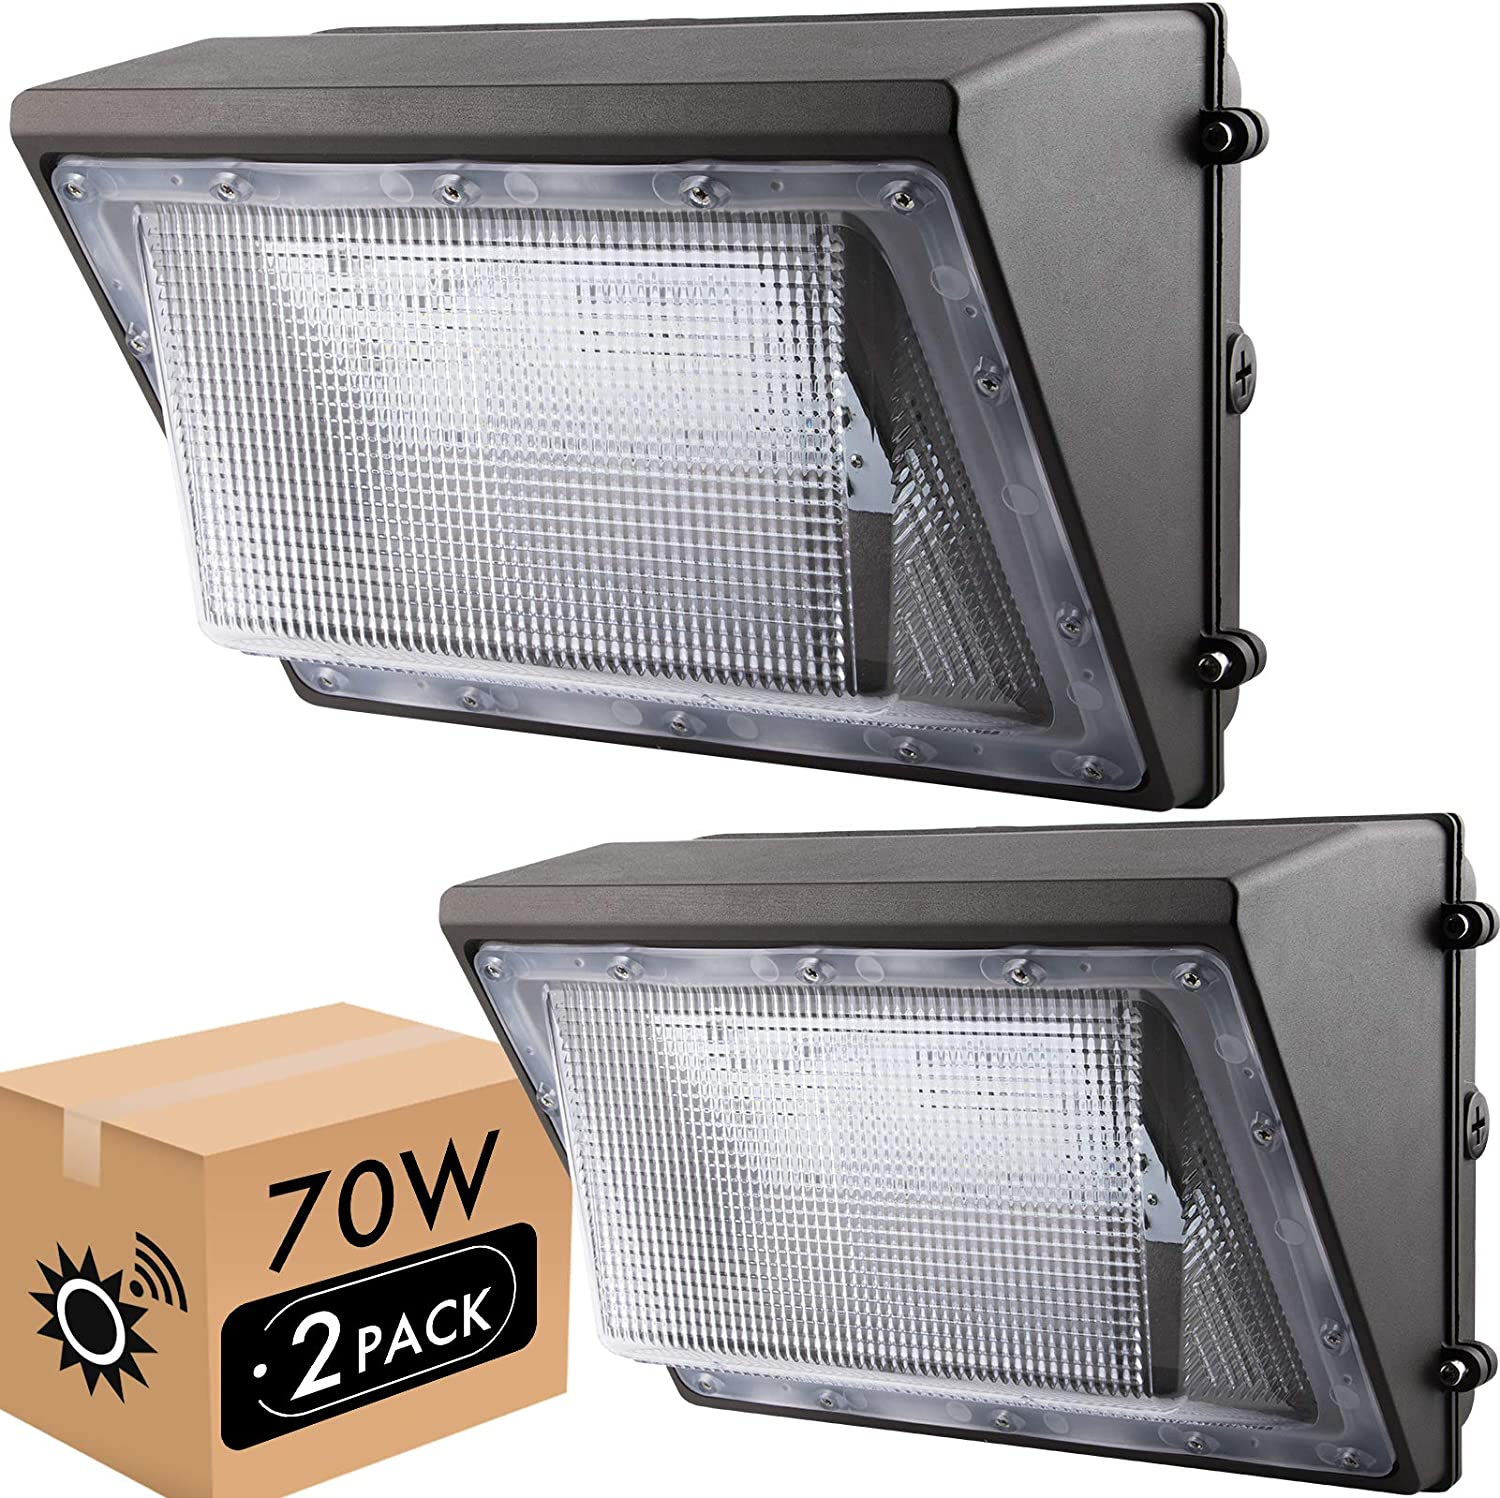 Amazon Com Lightdot 70w Led Wall Pack Lights With Dusk To Dawn Photocell 2 Pack 8000lm 5000k Daylight Ip65 Waterproof Wall Mount Outdoor Security Lighting Fixture Etl Dlc Listed Home Improvement